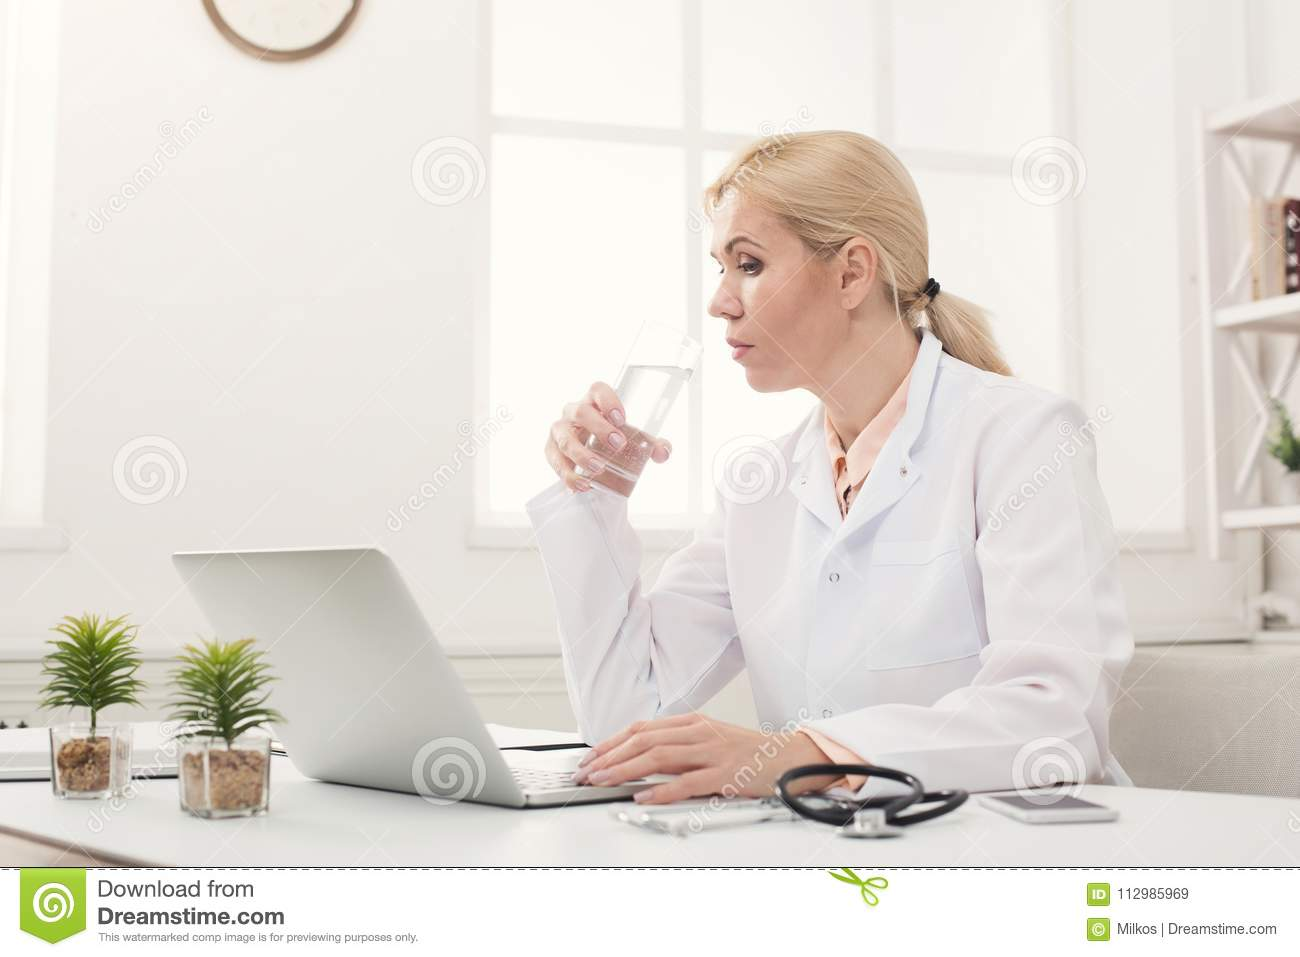 Serious female doctor typing on laptop